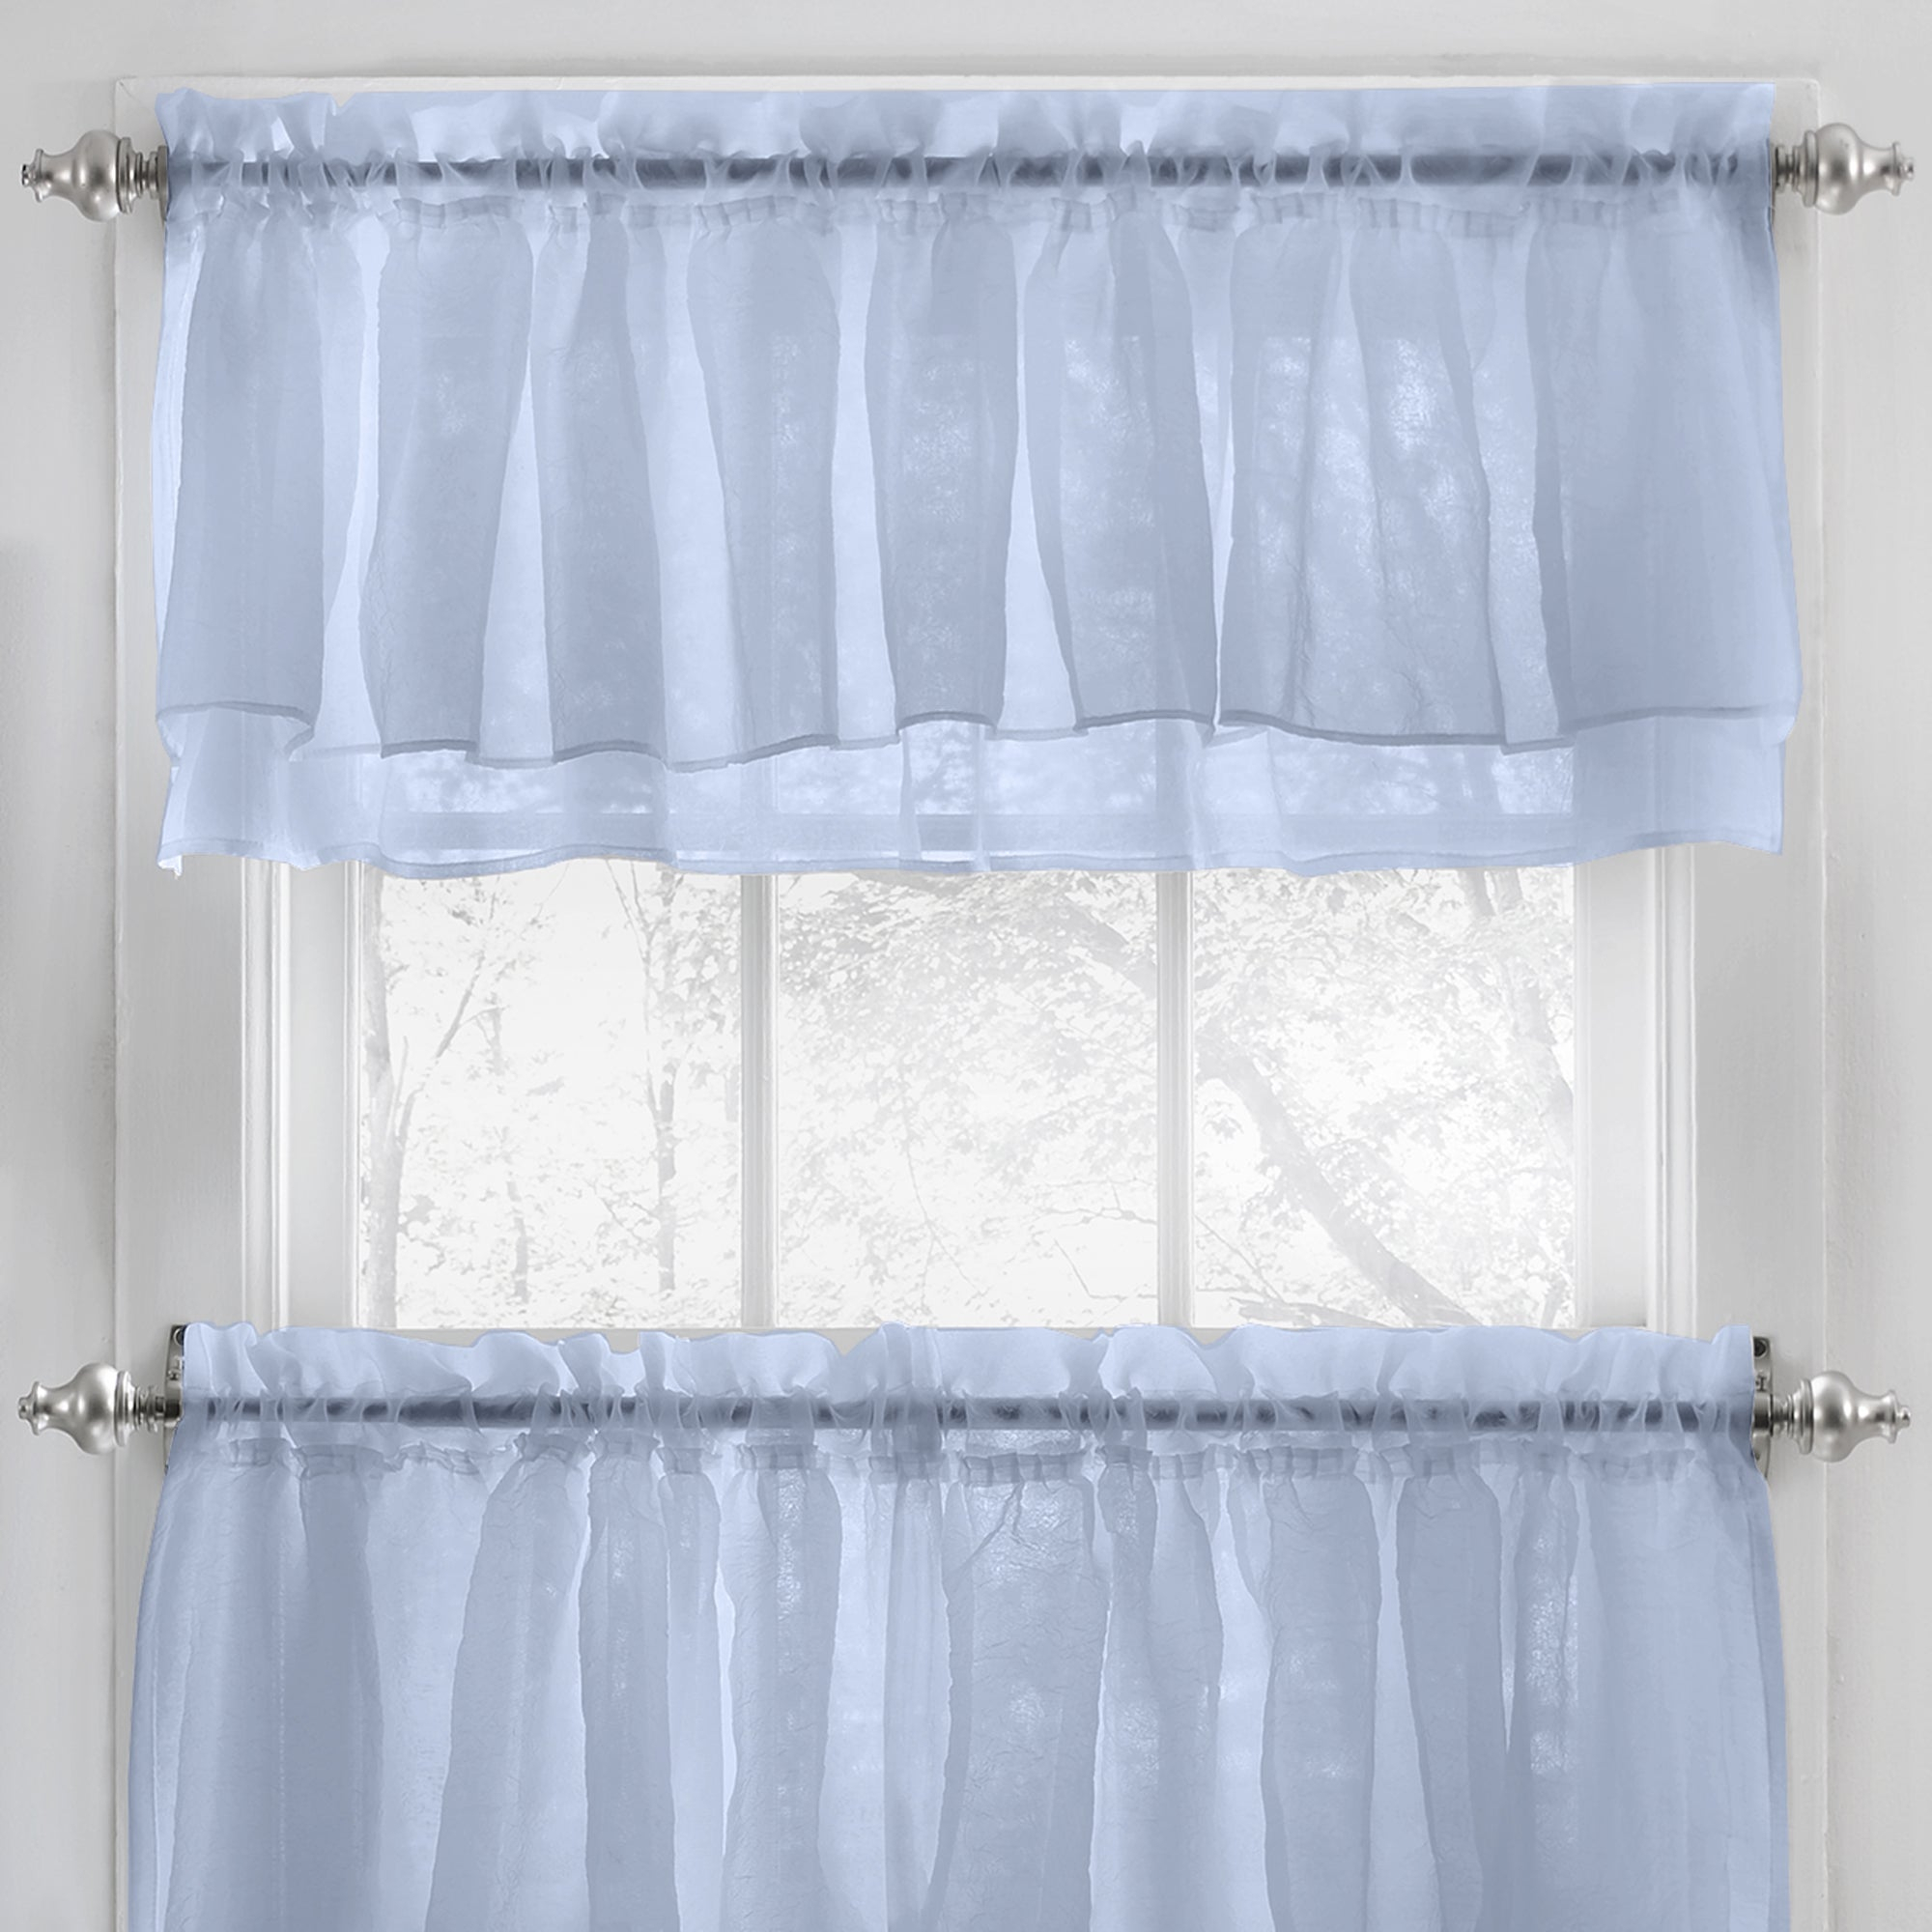 Elegant Crushed Voile Ruffle Blue/white/pink/purple/beige Window Curtain Pieces With Optional Valance And Tiers Intended For Elegant Crushed Voile Ruffle Window Curtain Pieces (View 3 of 20)